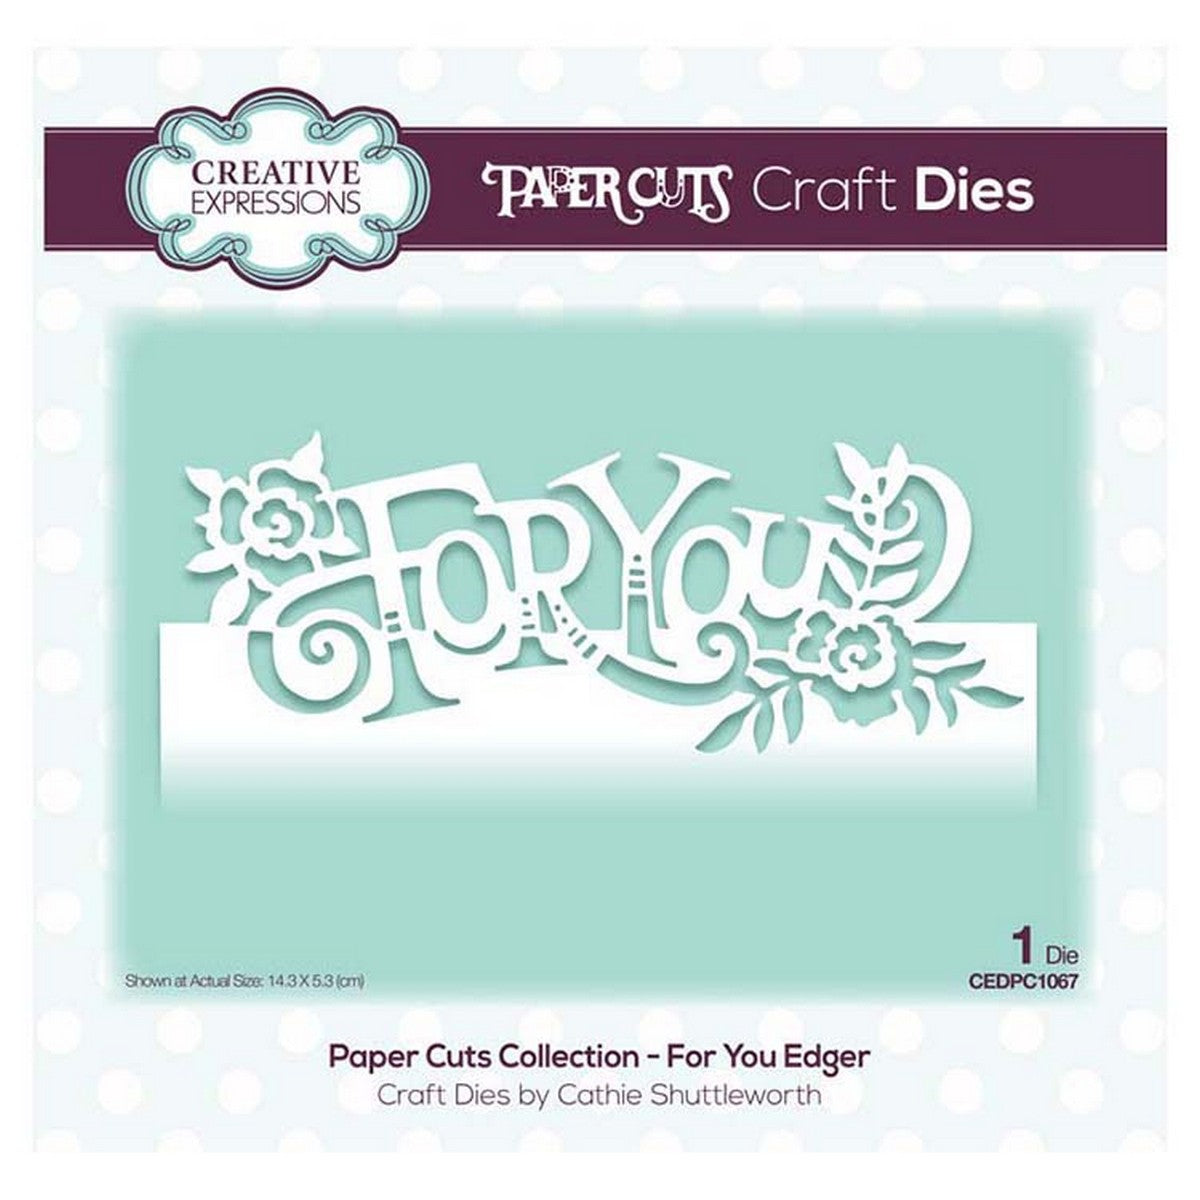 Creative Expressions - Paper Cuts Collection - For You Edger